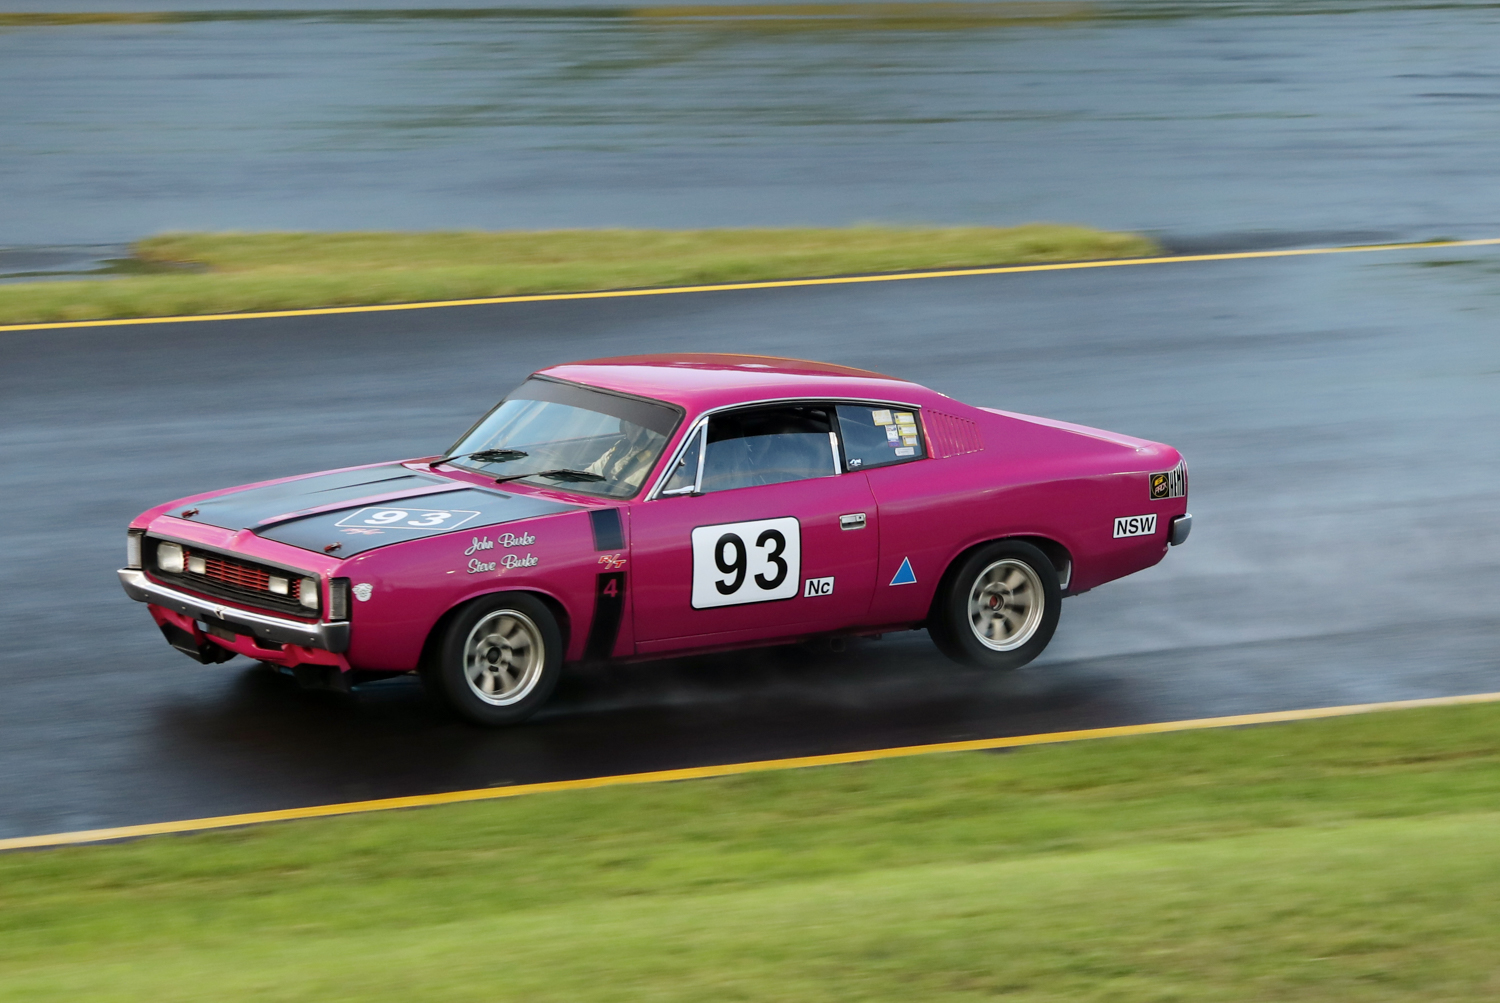 The Valiant Charger R/T 4 of John Burke. Steve Oom Photo. STEVE OOM PHOTOGRAPHY